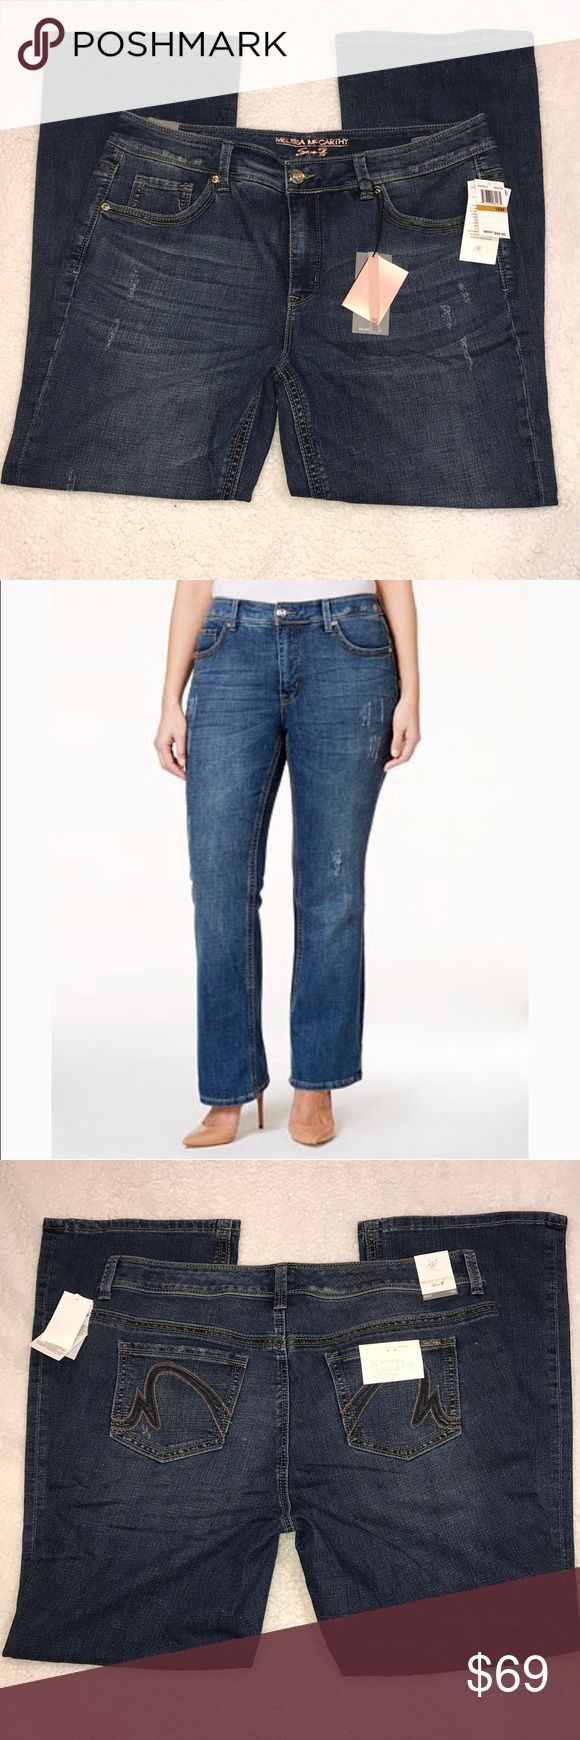 Melissa McCarthy Seven7 Boot Cut Denim Jeans 16W Melissa McCarthy Seven7 Trendy Boot Cut Bootcut Distressed Denim Blue Jeans Size 16W New With Tags 31 inch inseam Melissa McCarthy Seven7 Jeans Boot Cut